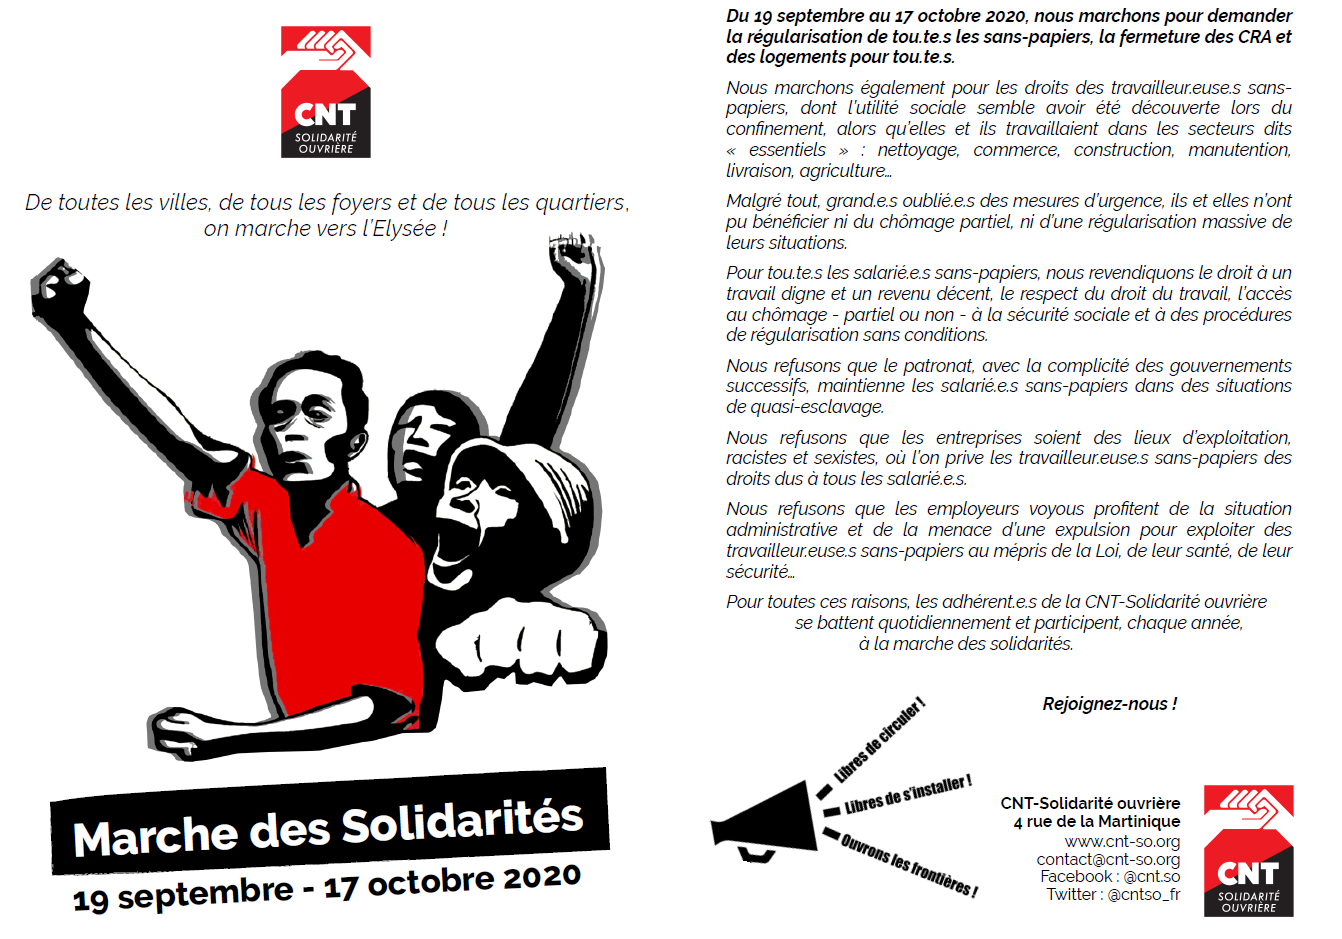 tractmarchesolidarite2020_web-page1.png